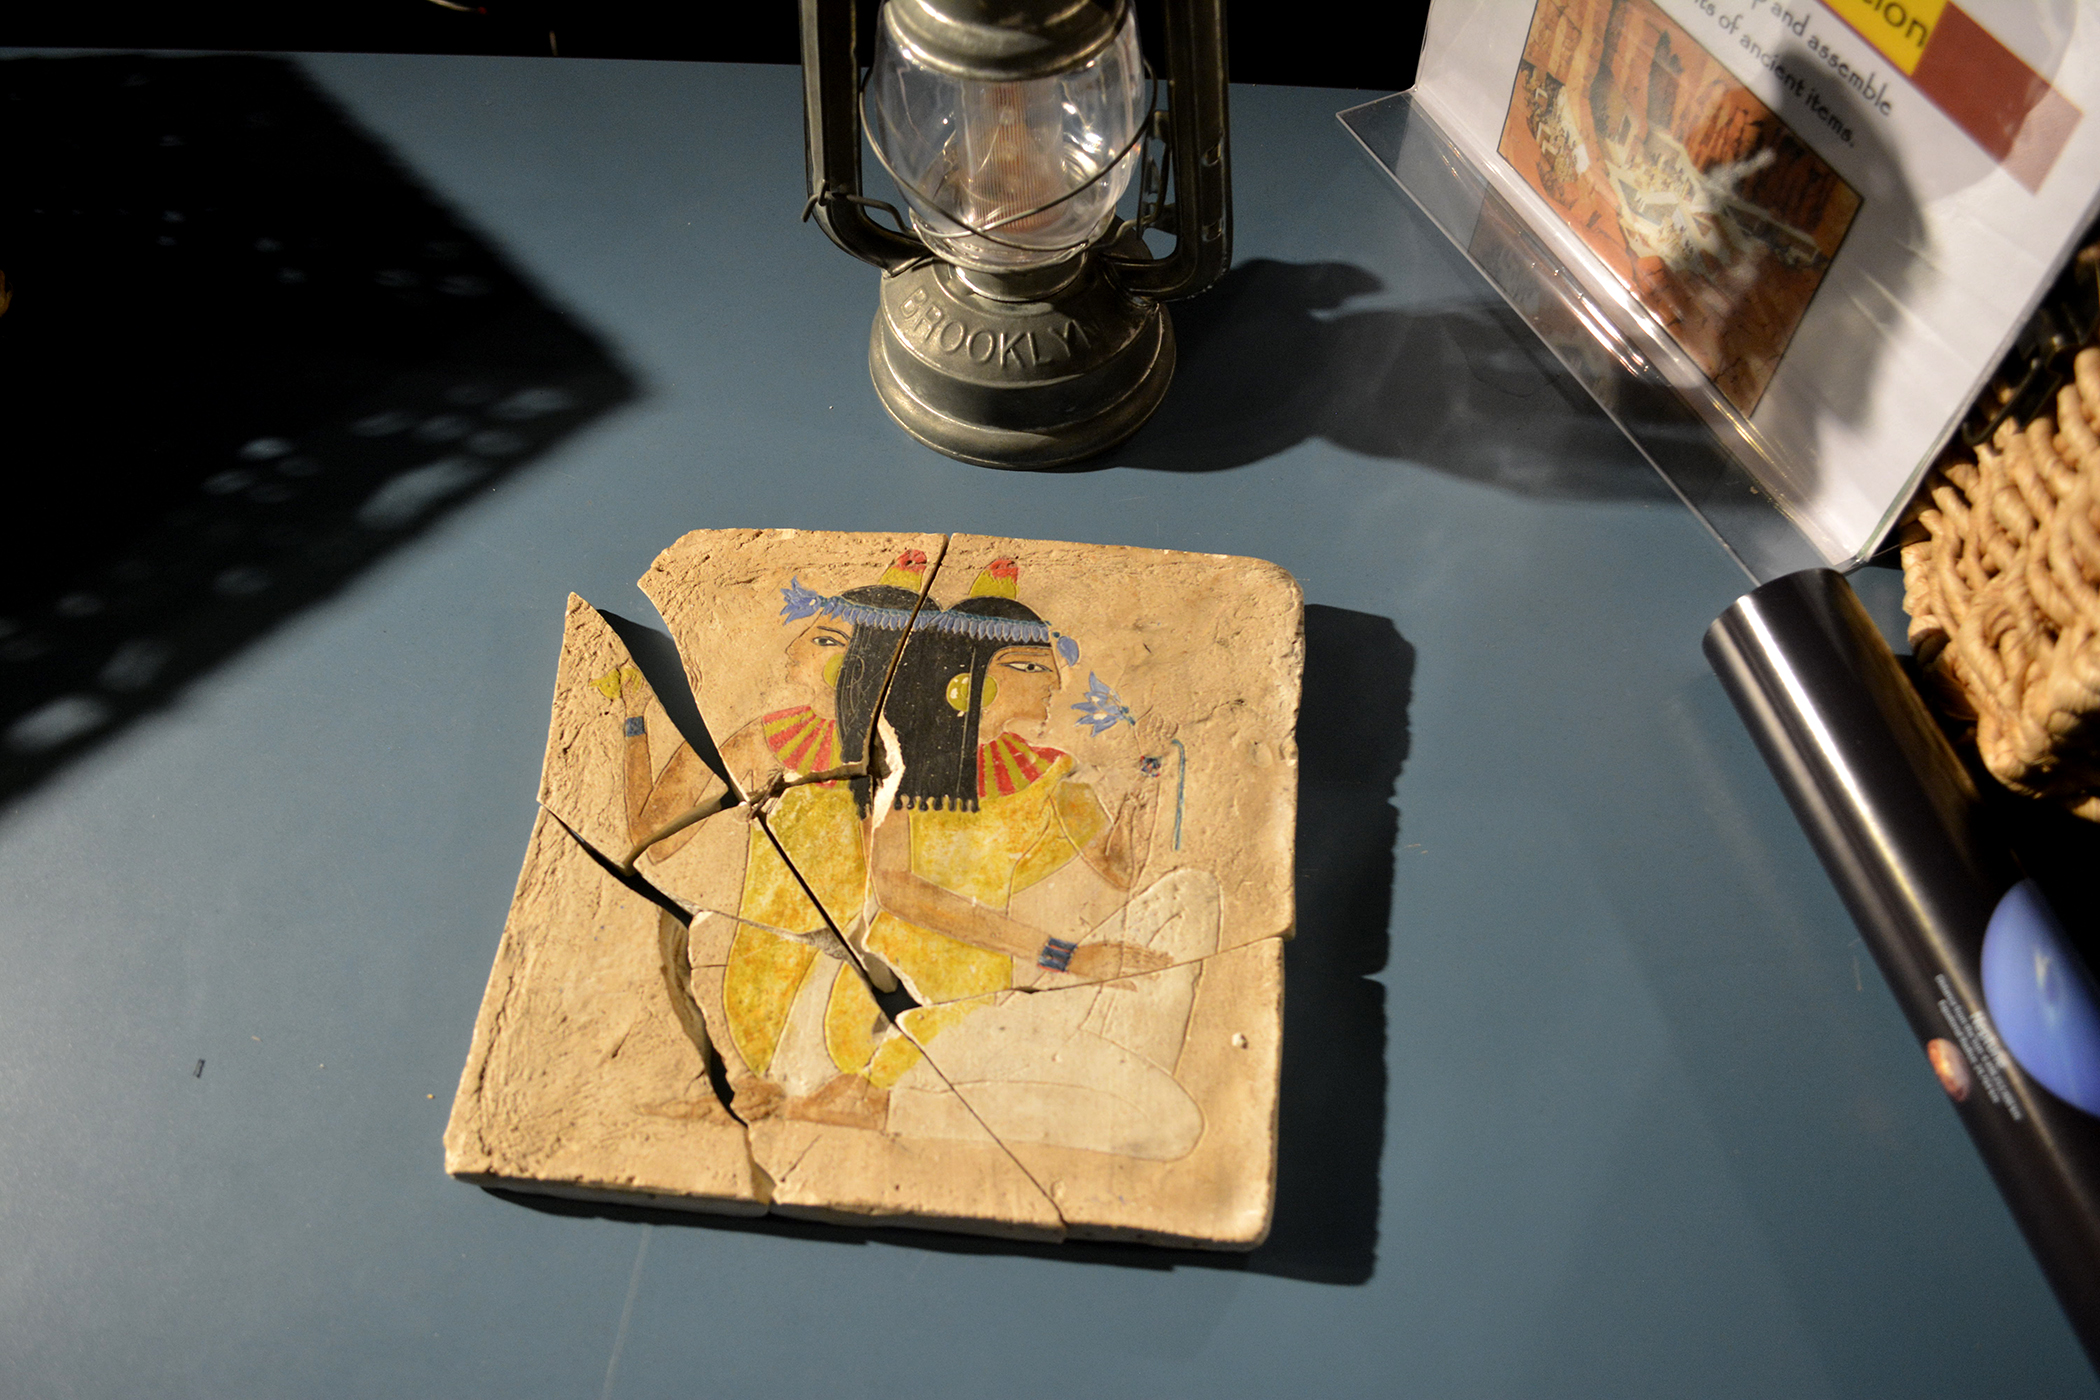 Assemble ancient tablets to discover clues!